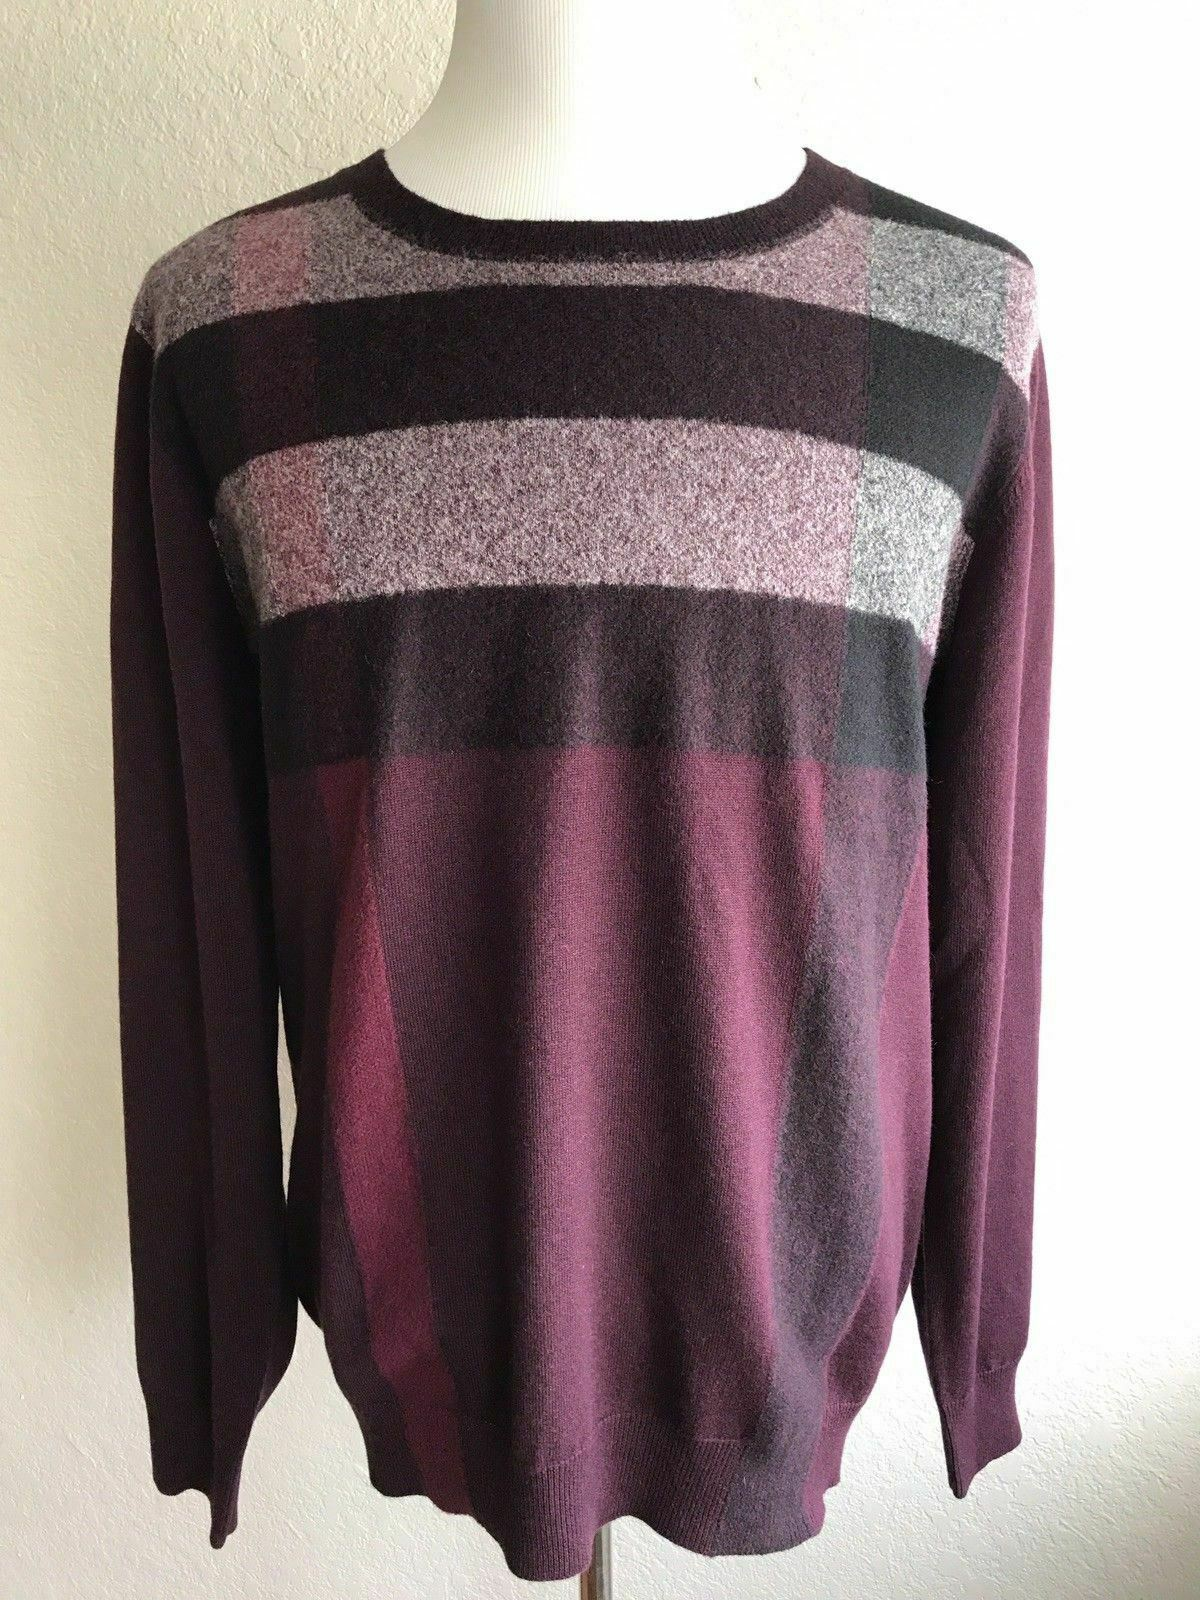 NWT $595 Burberry BRIT Burgundy Red Long Sleeves Cashmere/Cotton Sweater 3XL